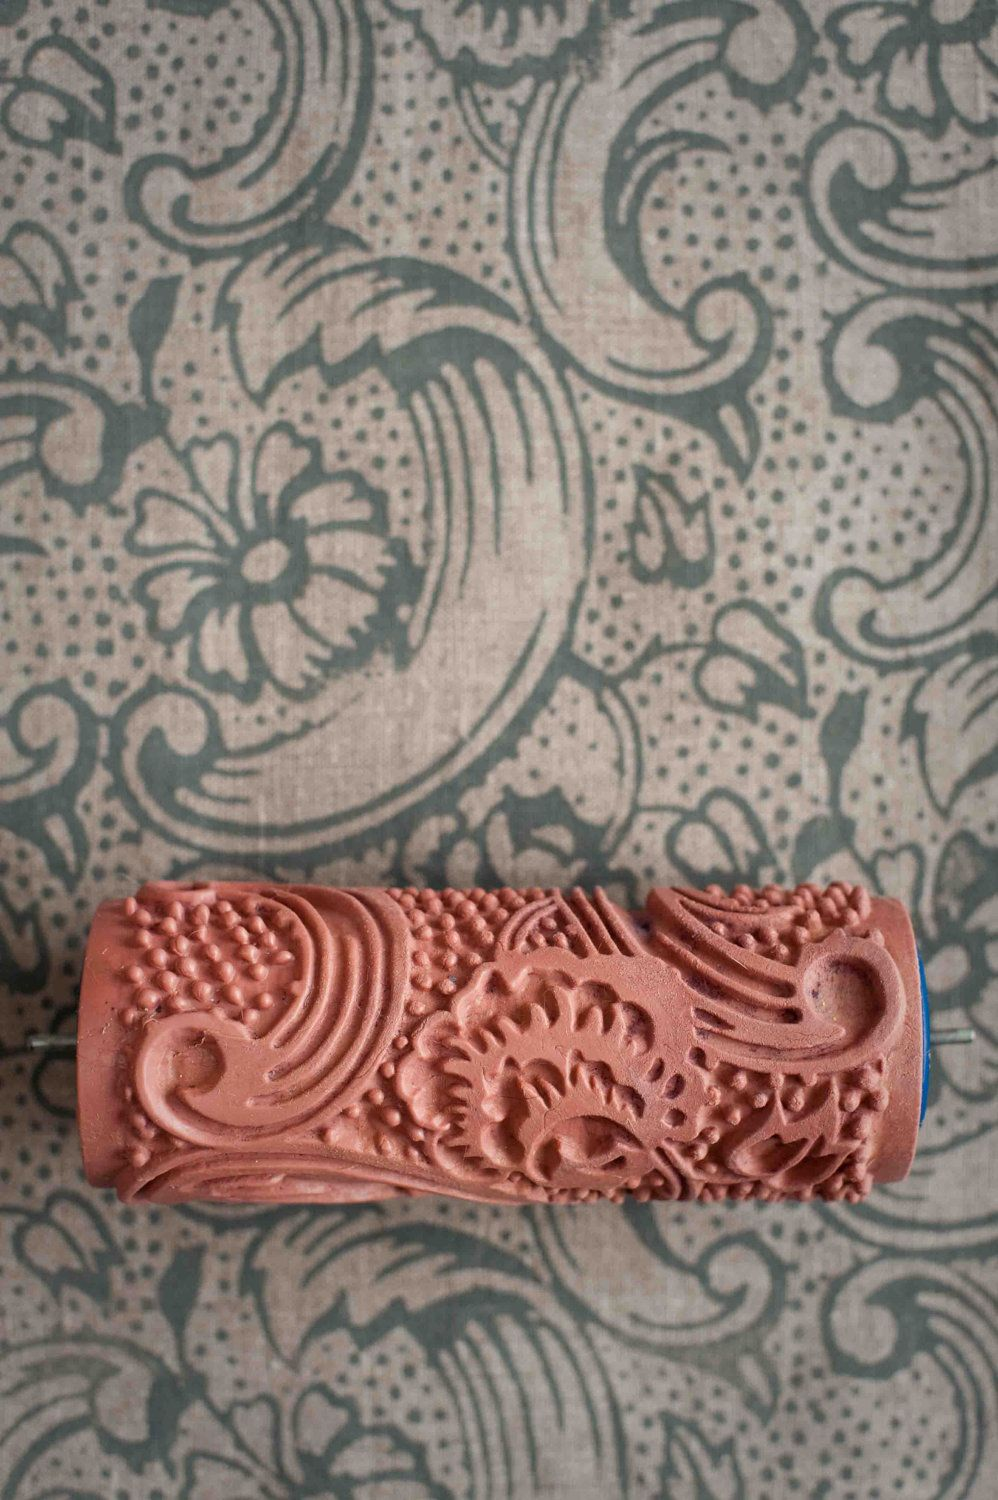 No 7 Patterned Paint Roller From The Painted House Keramik